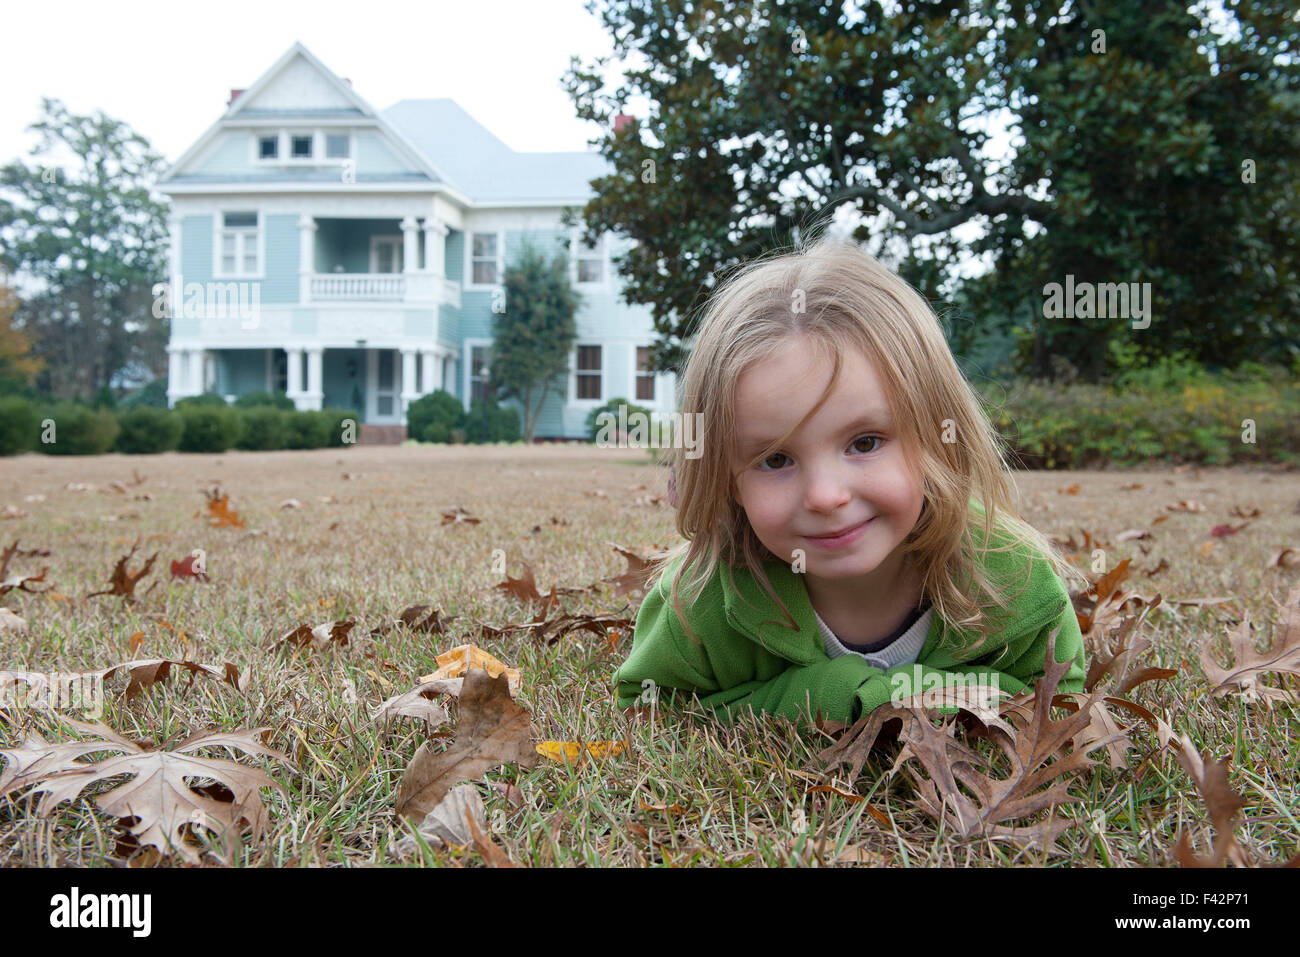 Girl lying on stomach on lawn, smiling, portrait - Stock Image